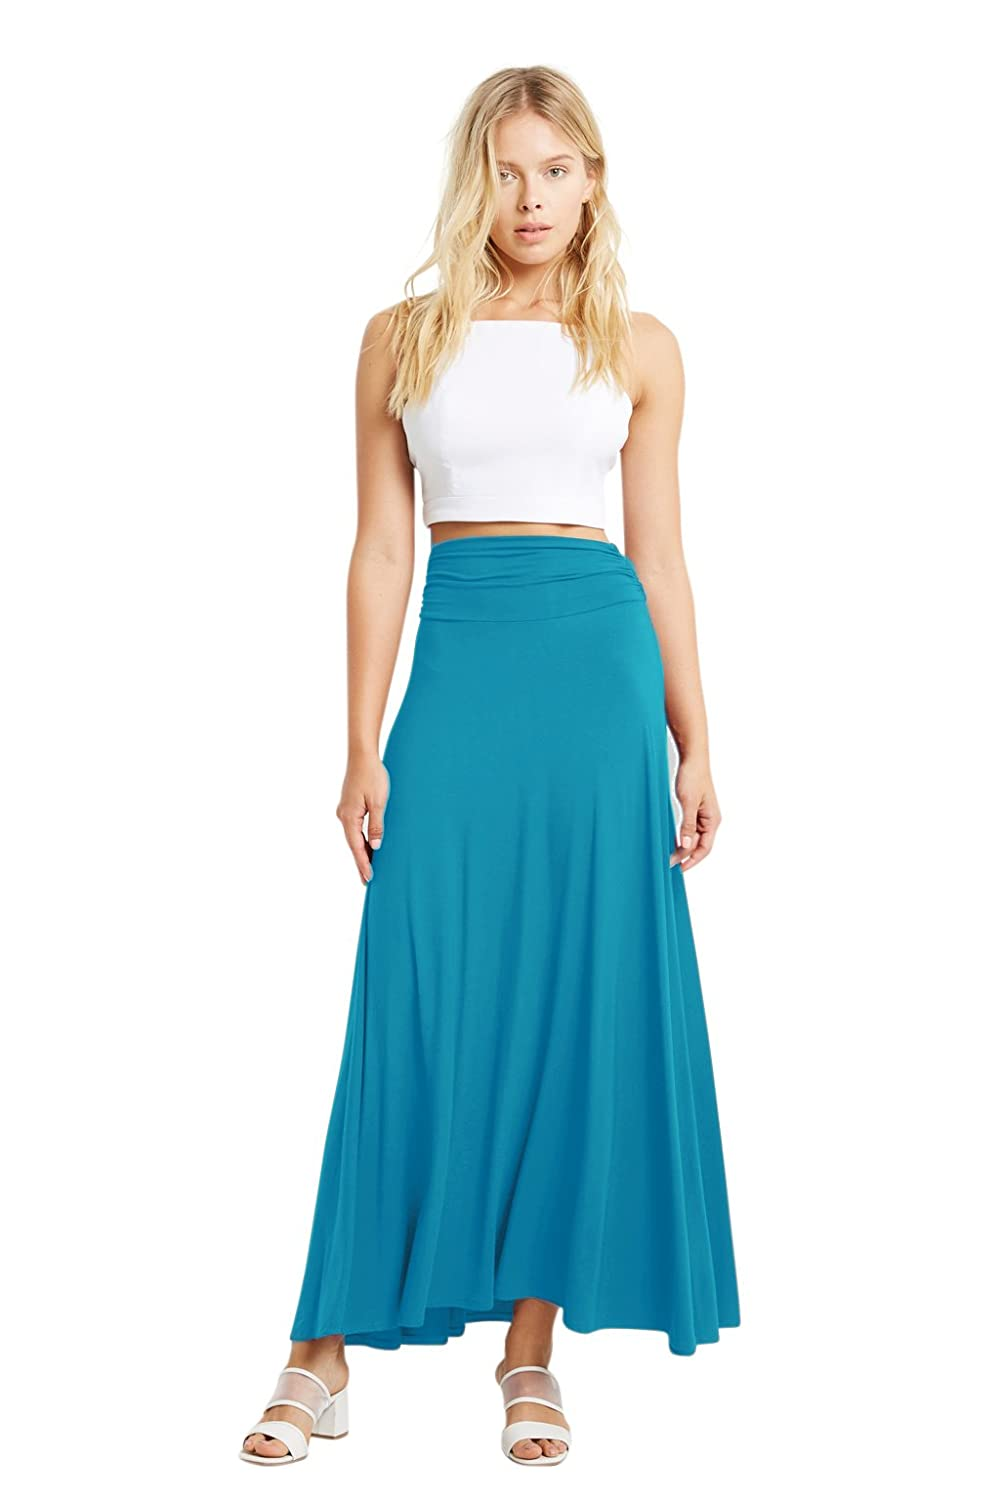 Poshsquare Womens Fashion Solid and Stripe Color Comfy Chic Maxi Waist Skirt USA